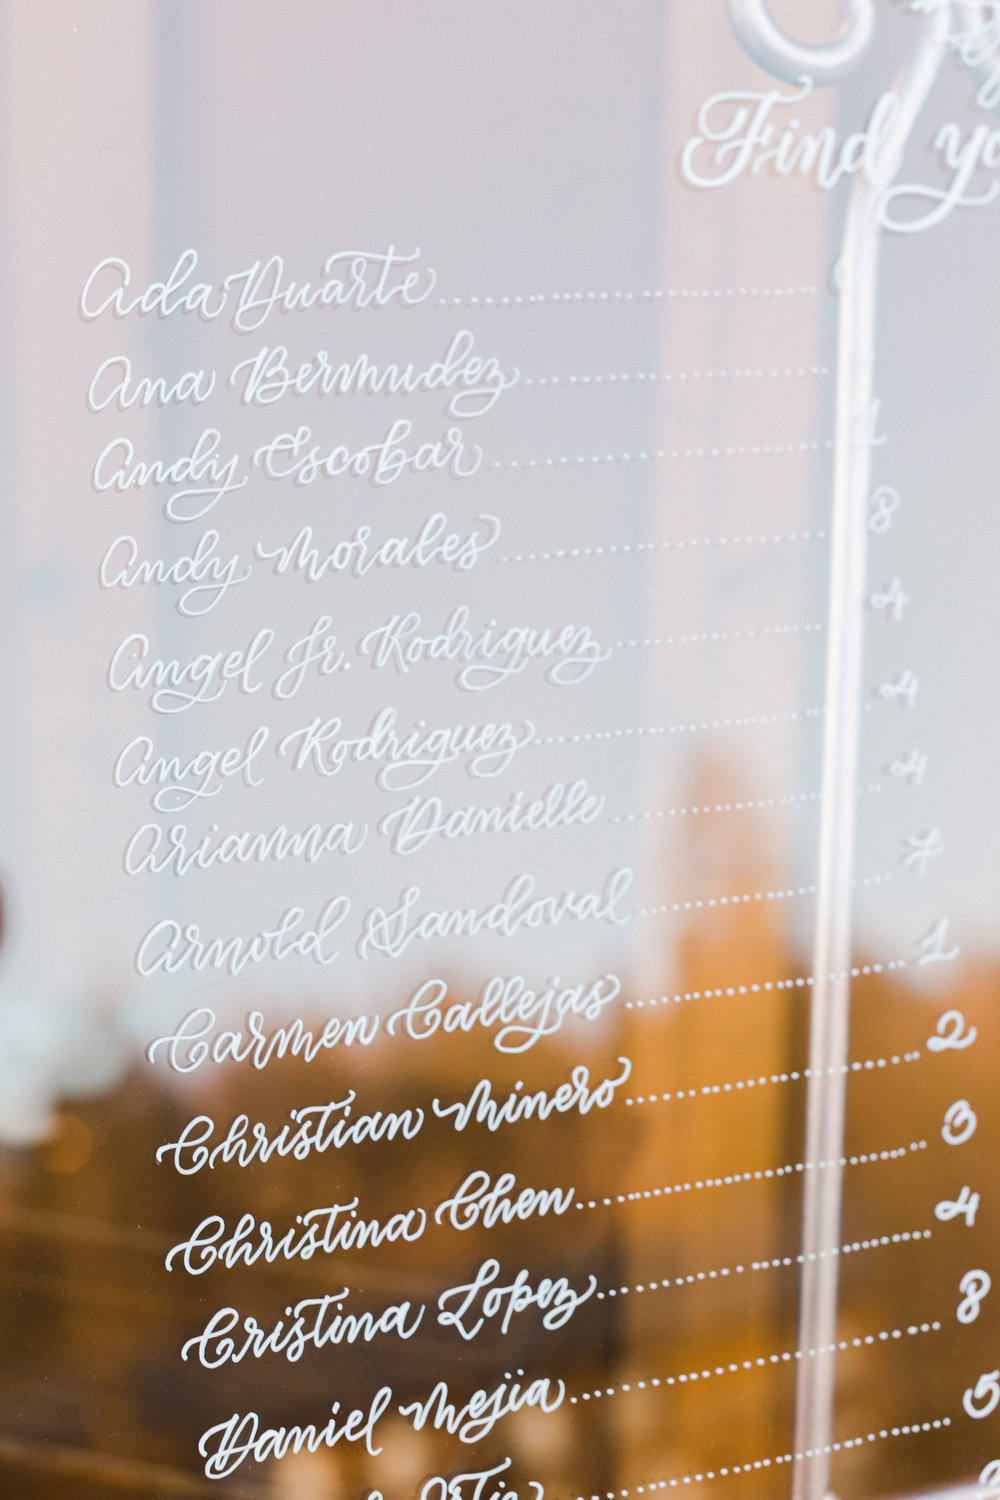 Yosemite wedding table number calligraphy items by paperloveme36.jpg